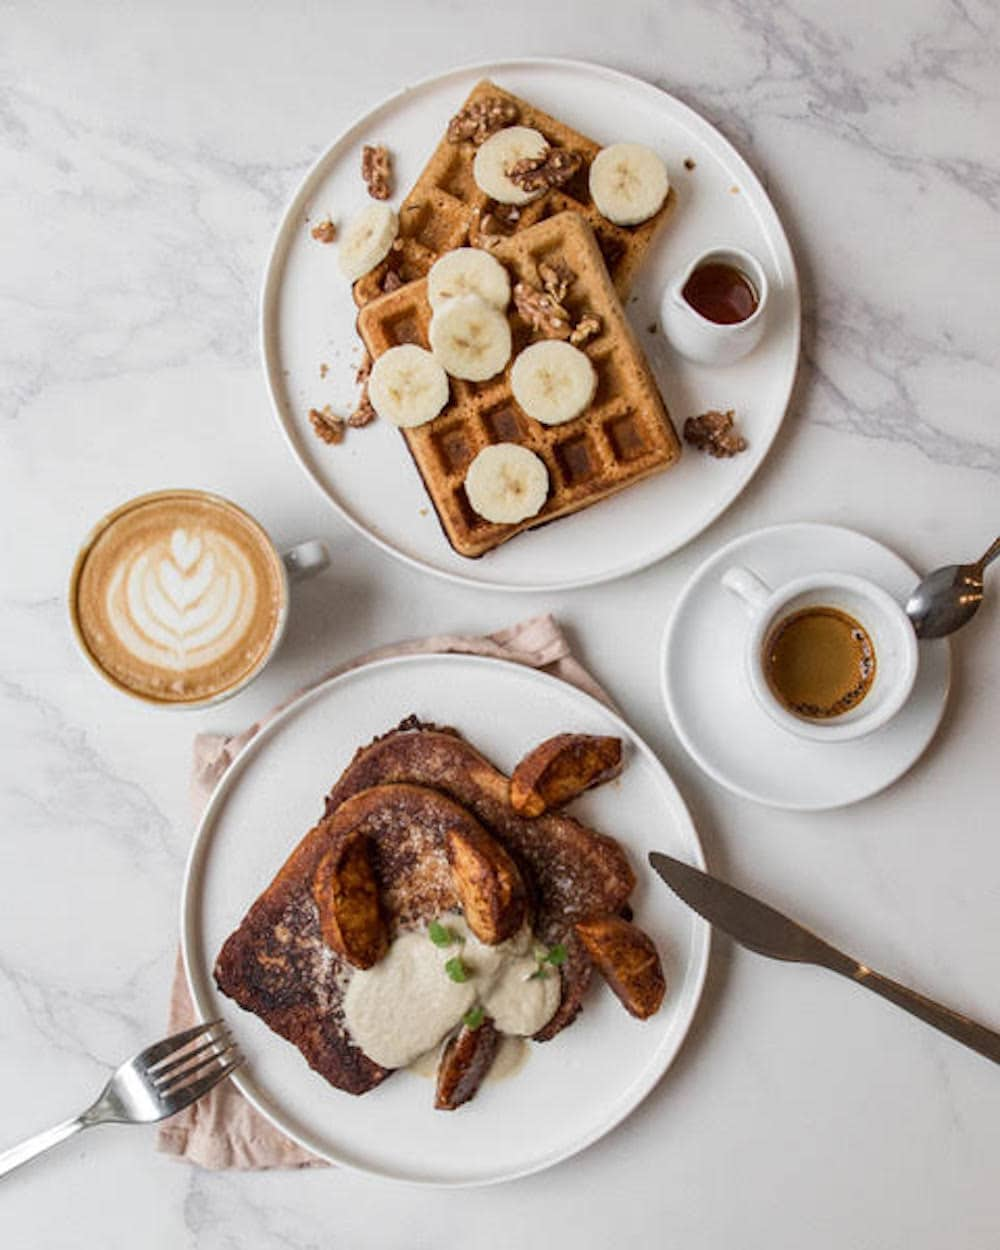 SUE is perfect for breakfast. Go for their vegan French Toast or waffles!